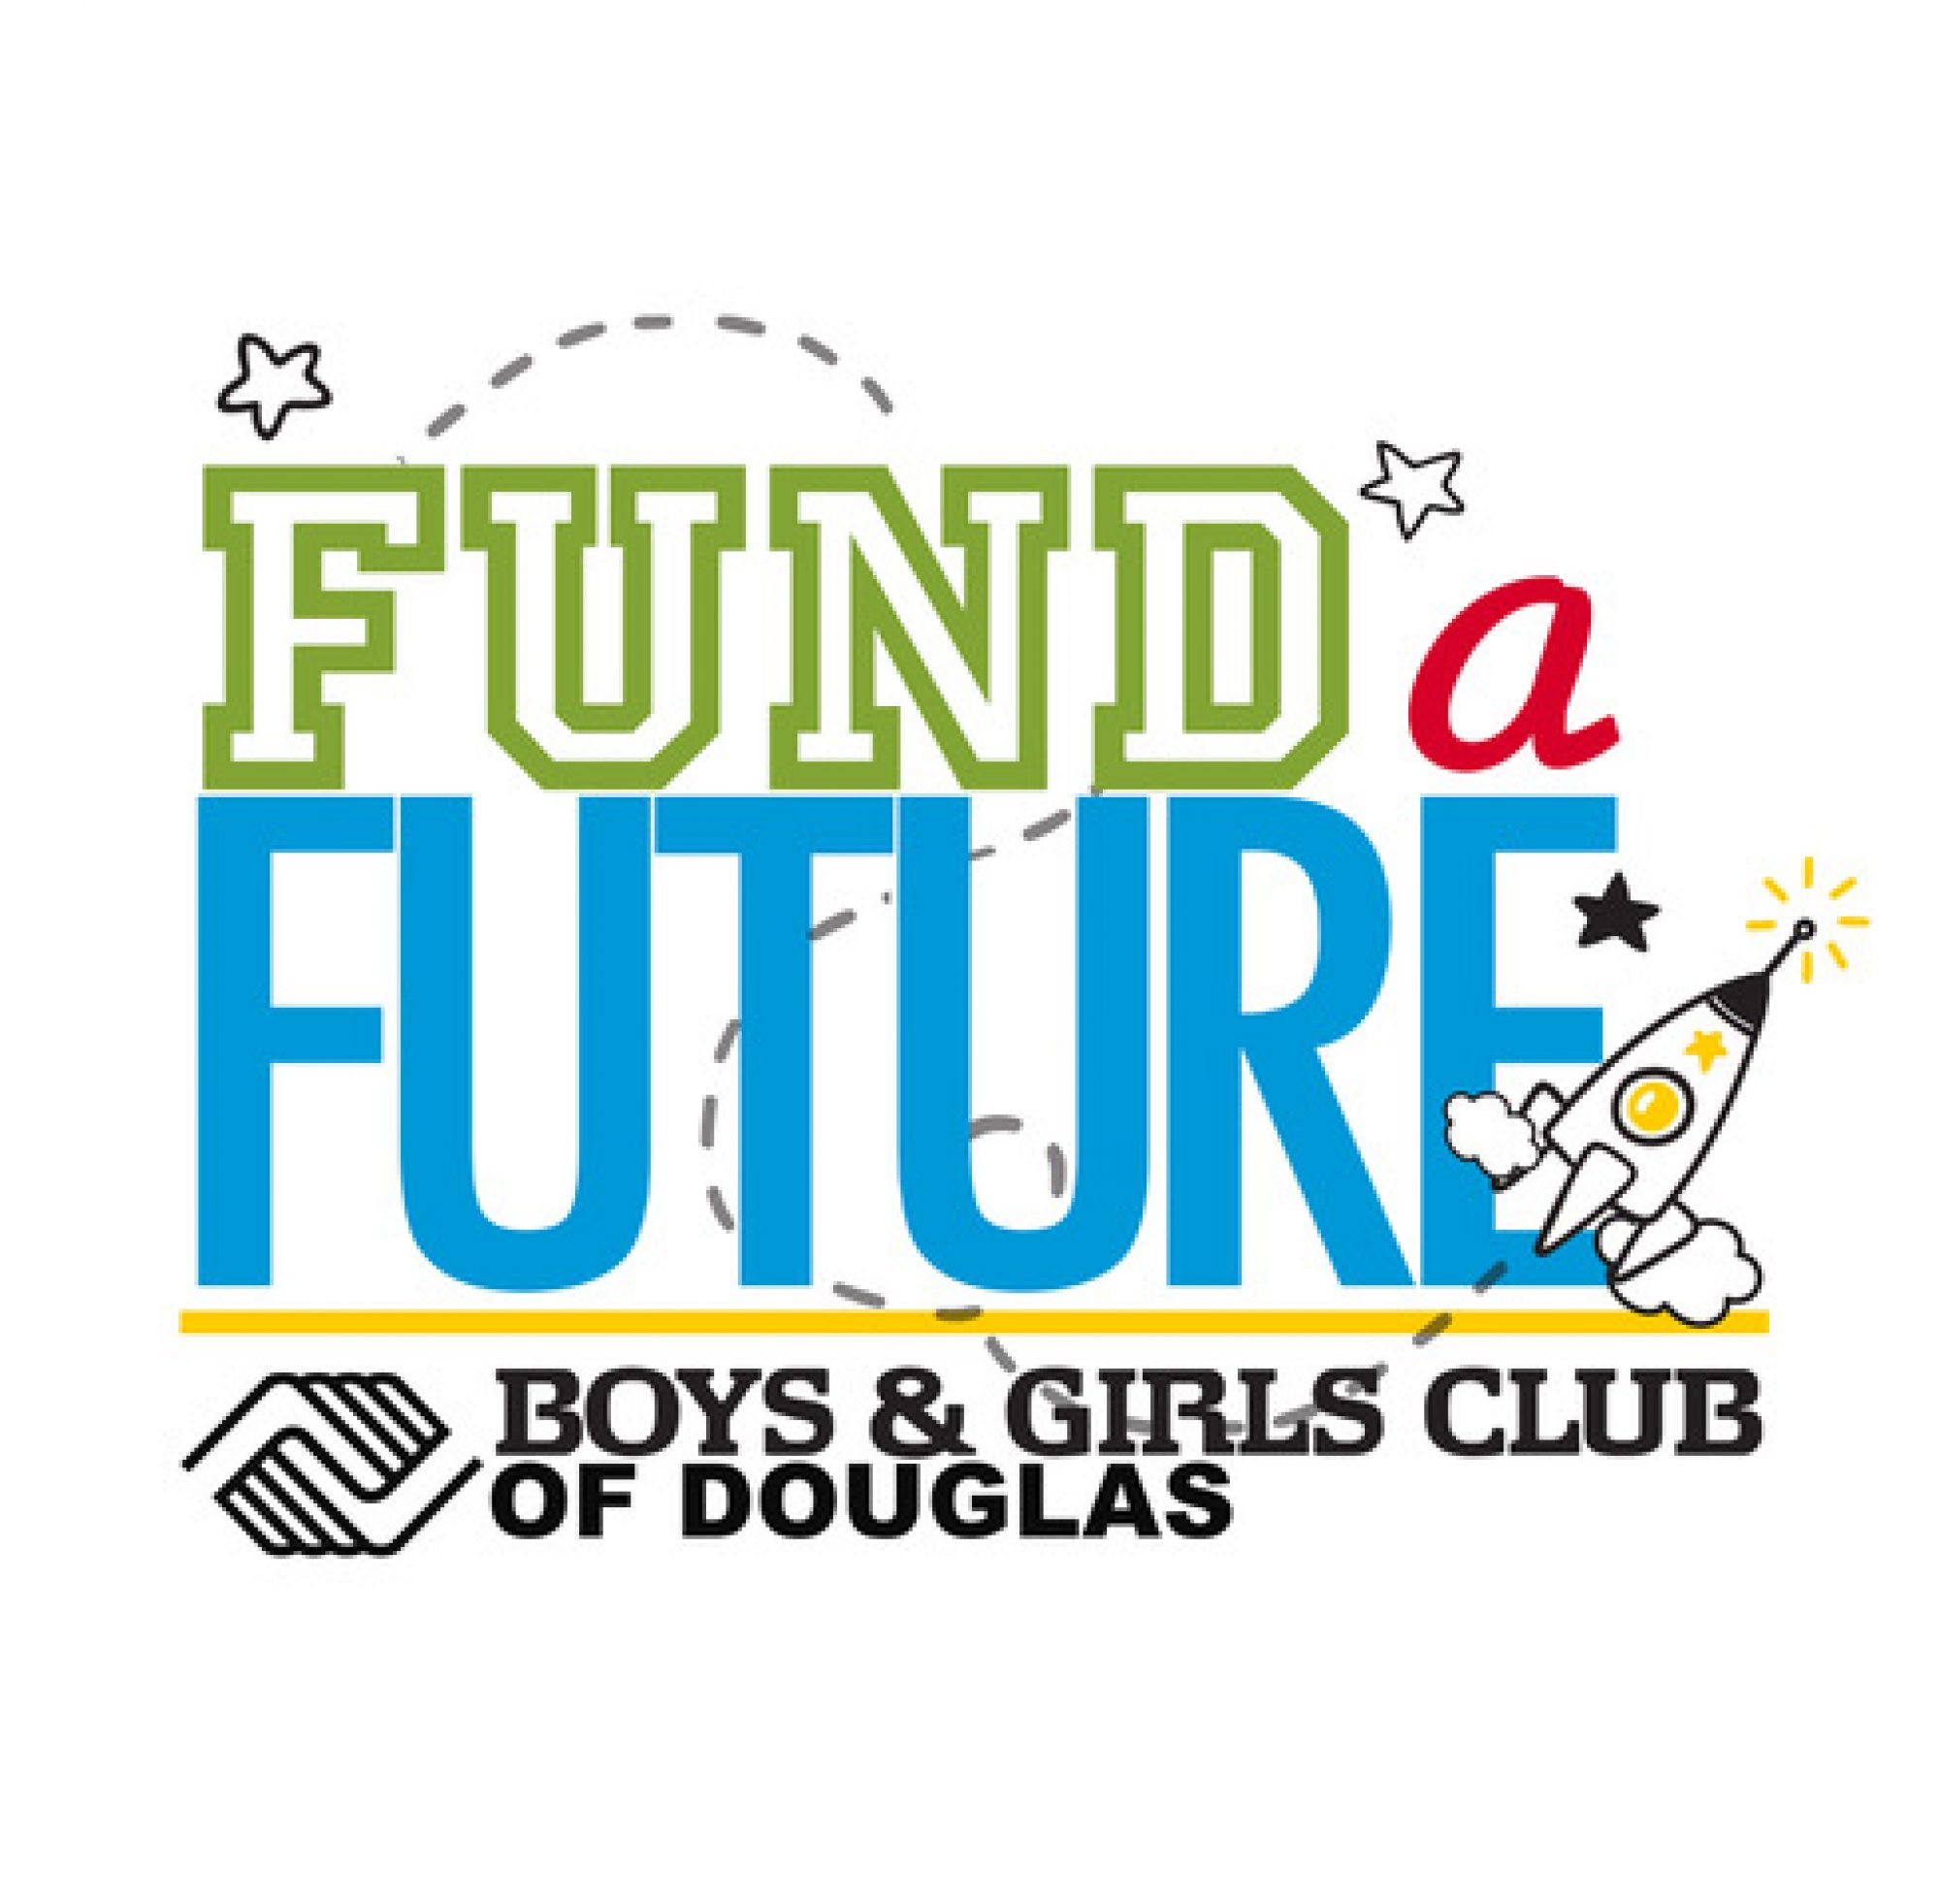 Boys & Girls Club of Douglas